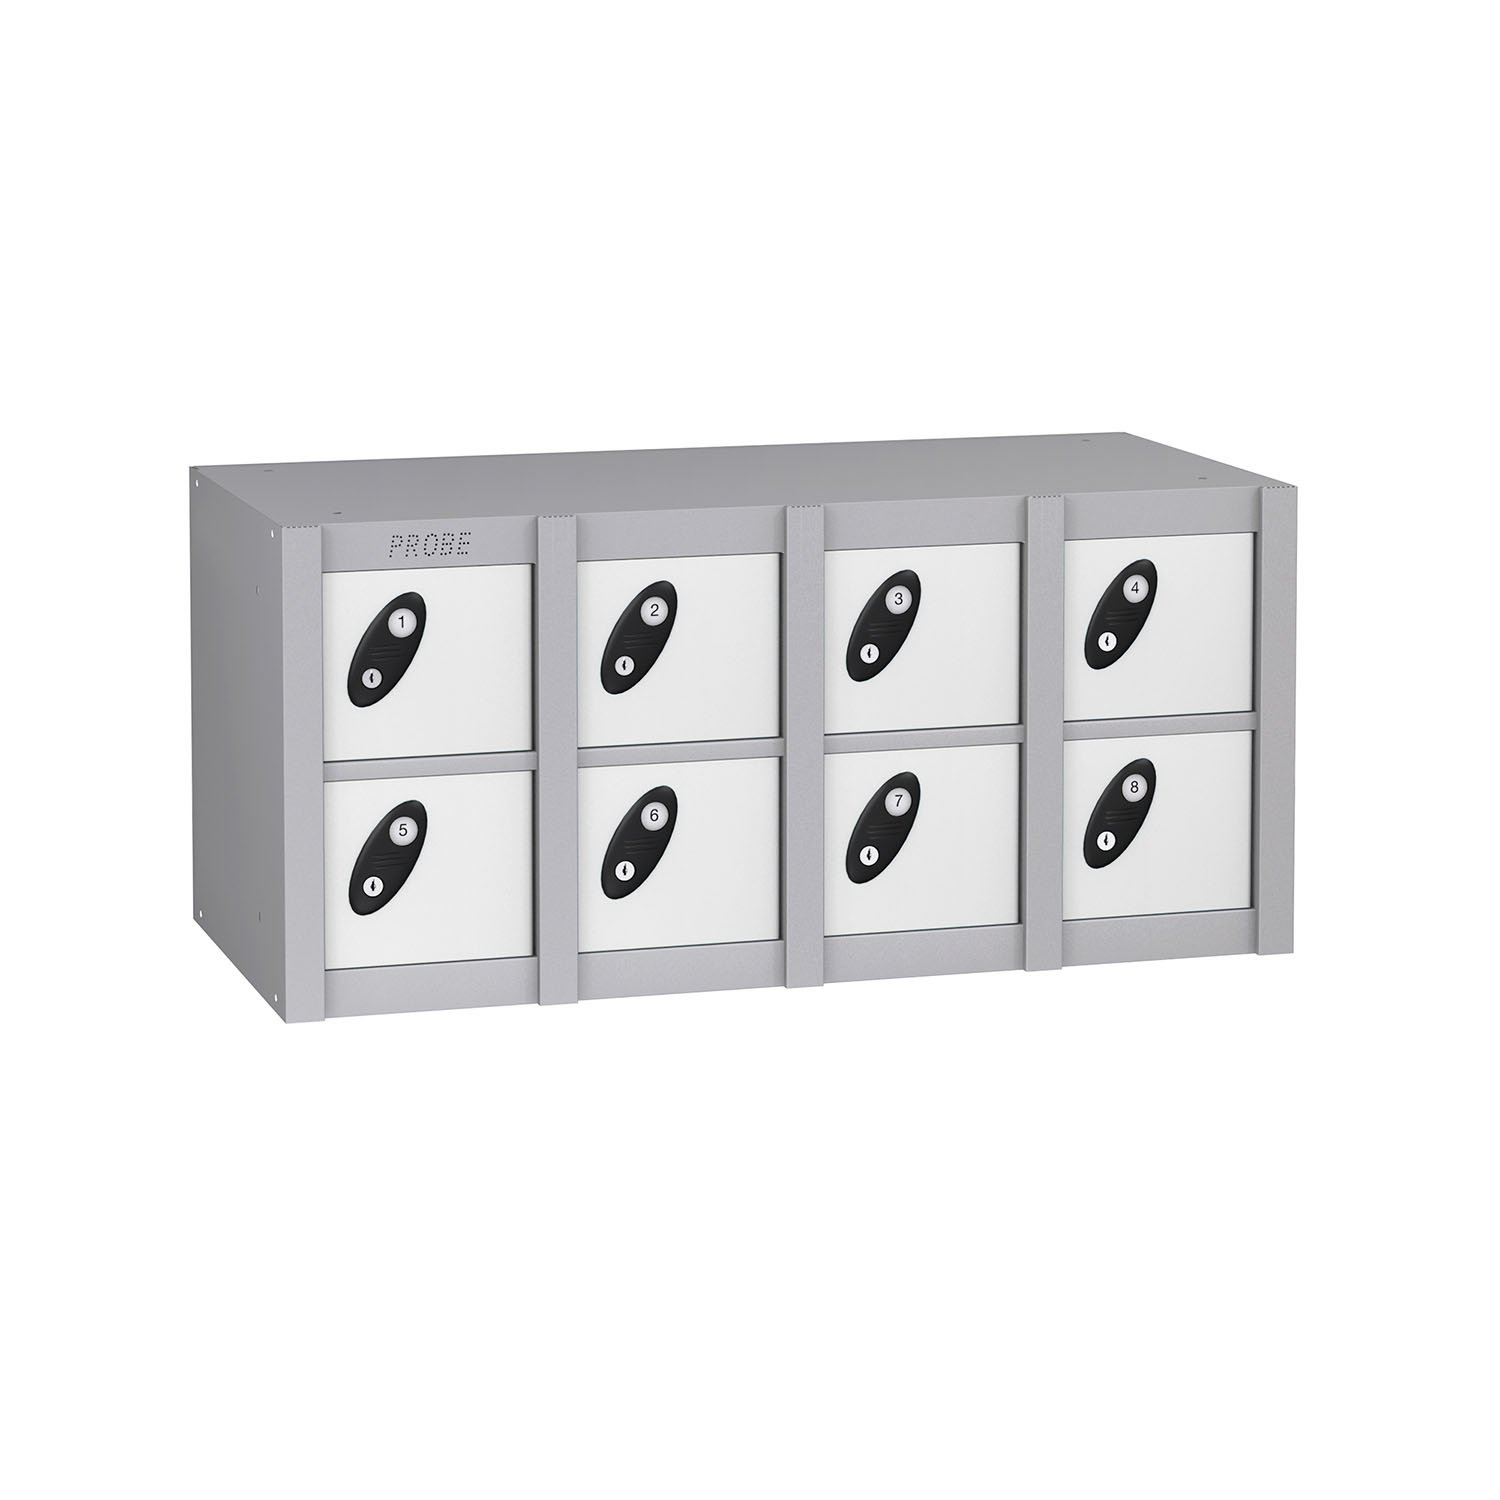 Probe 8 doors minibox lockers in white colour